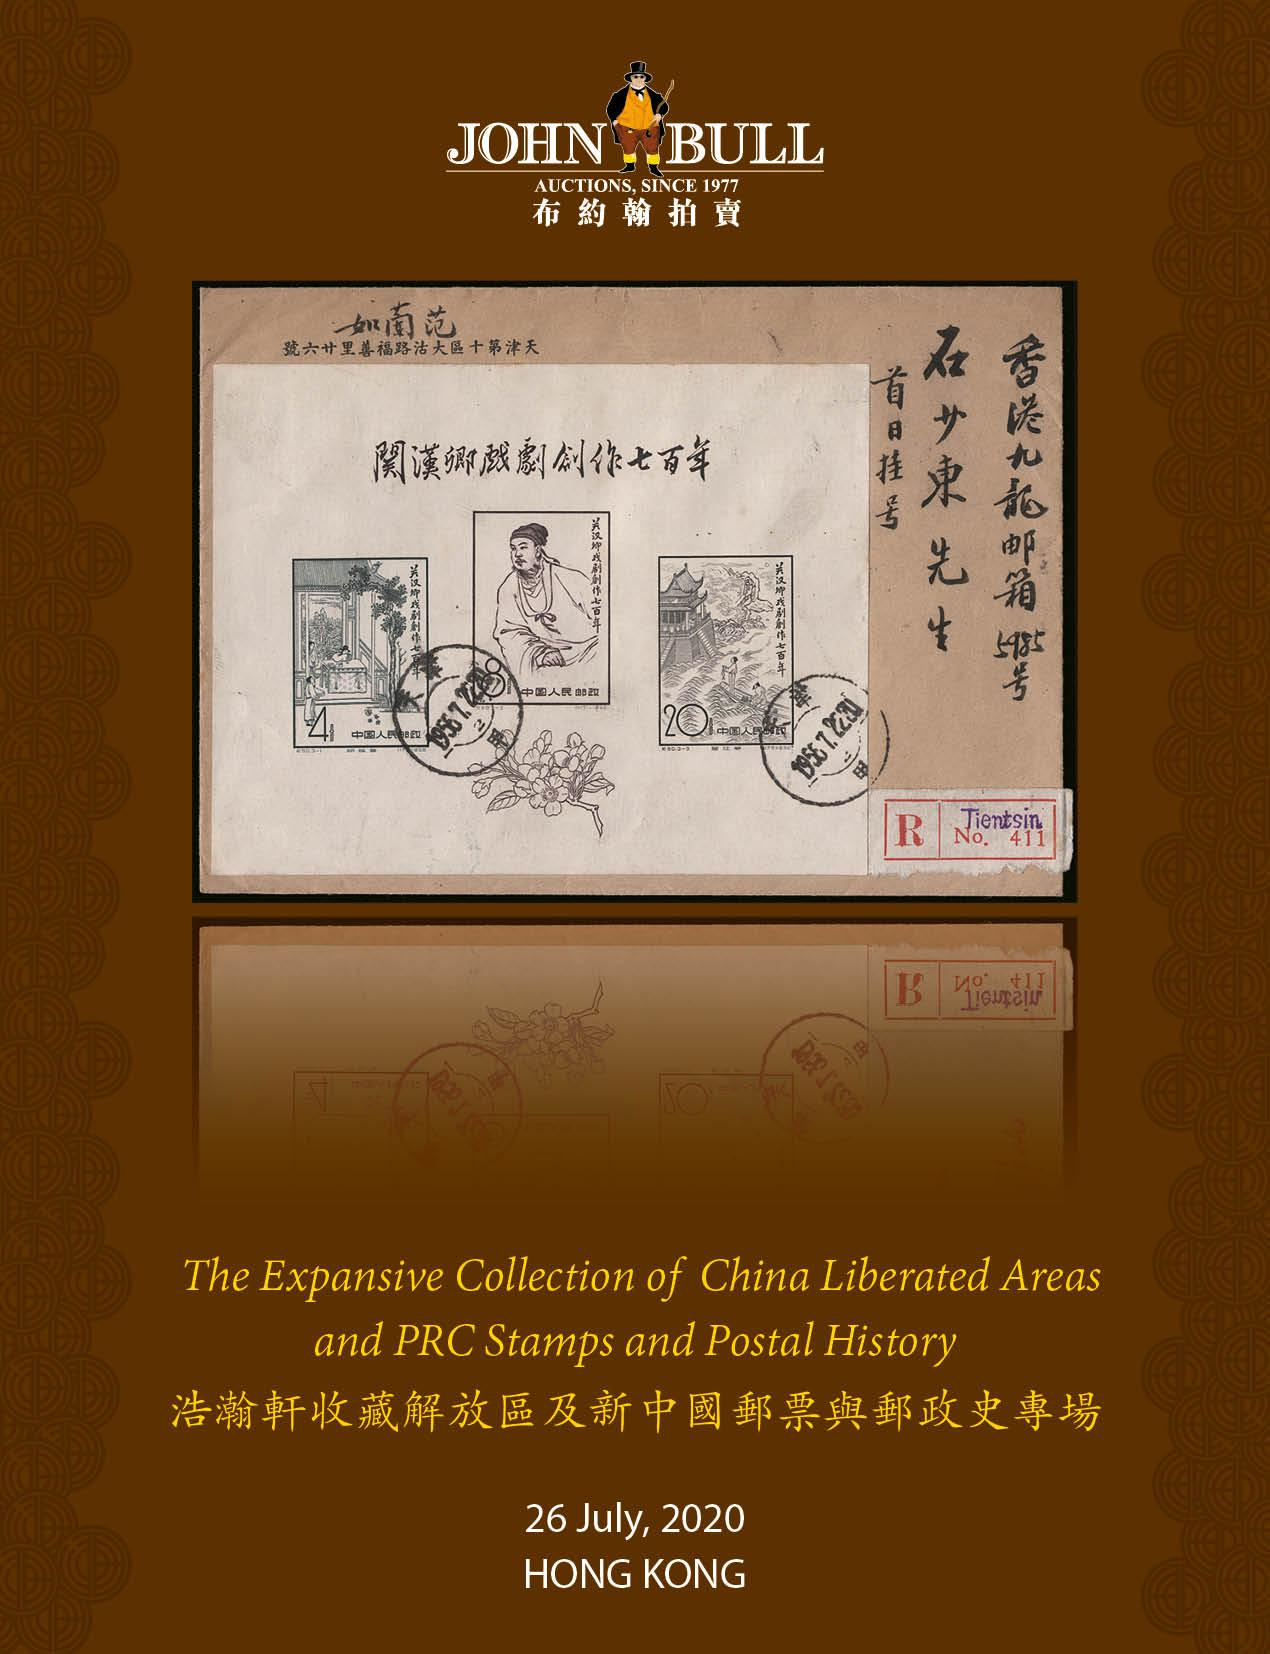 The Expansive Collection of China Liberated Areas and PRC Stamps and Postal History